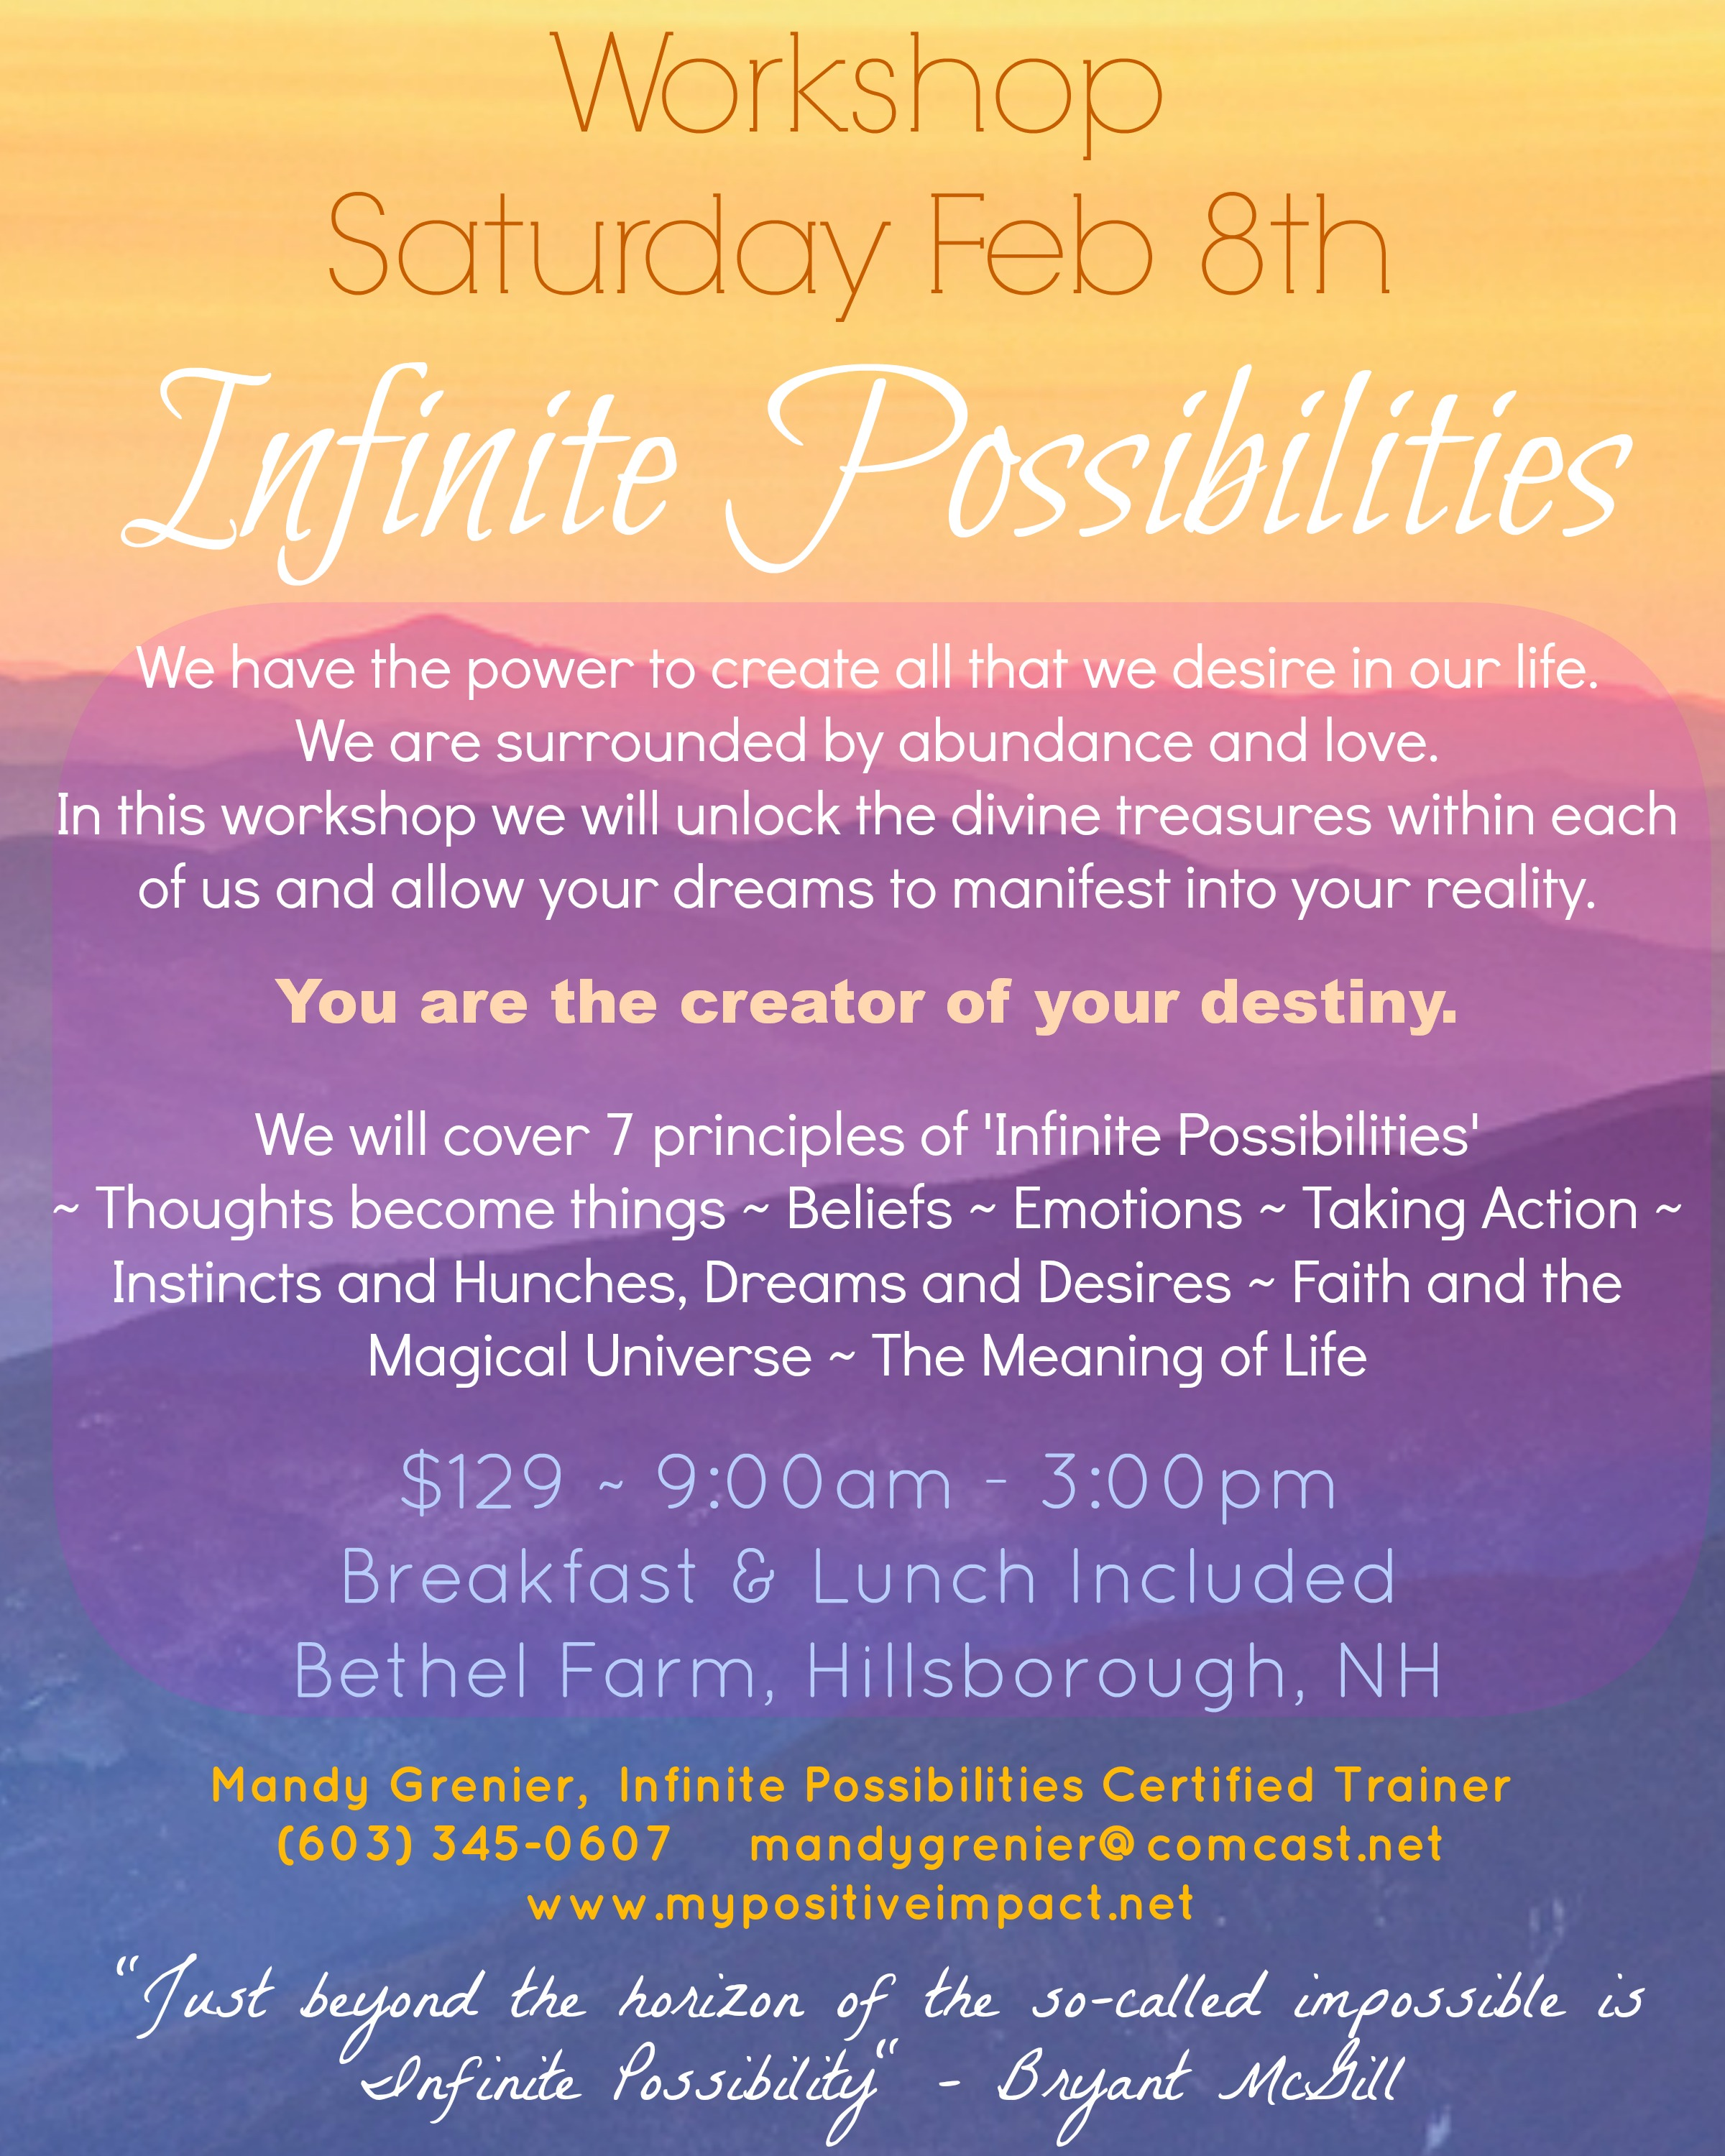 Infinite Possibilities Workshop With Mandy Grenier